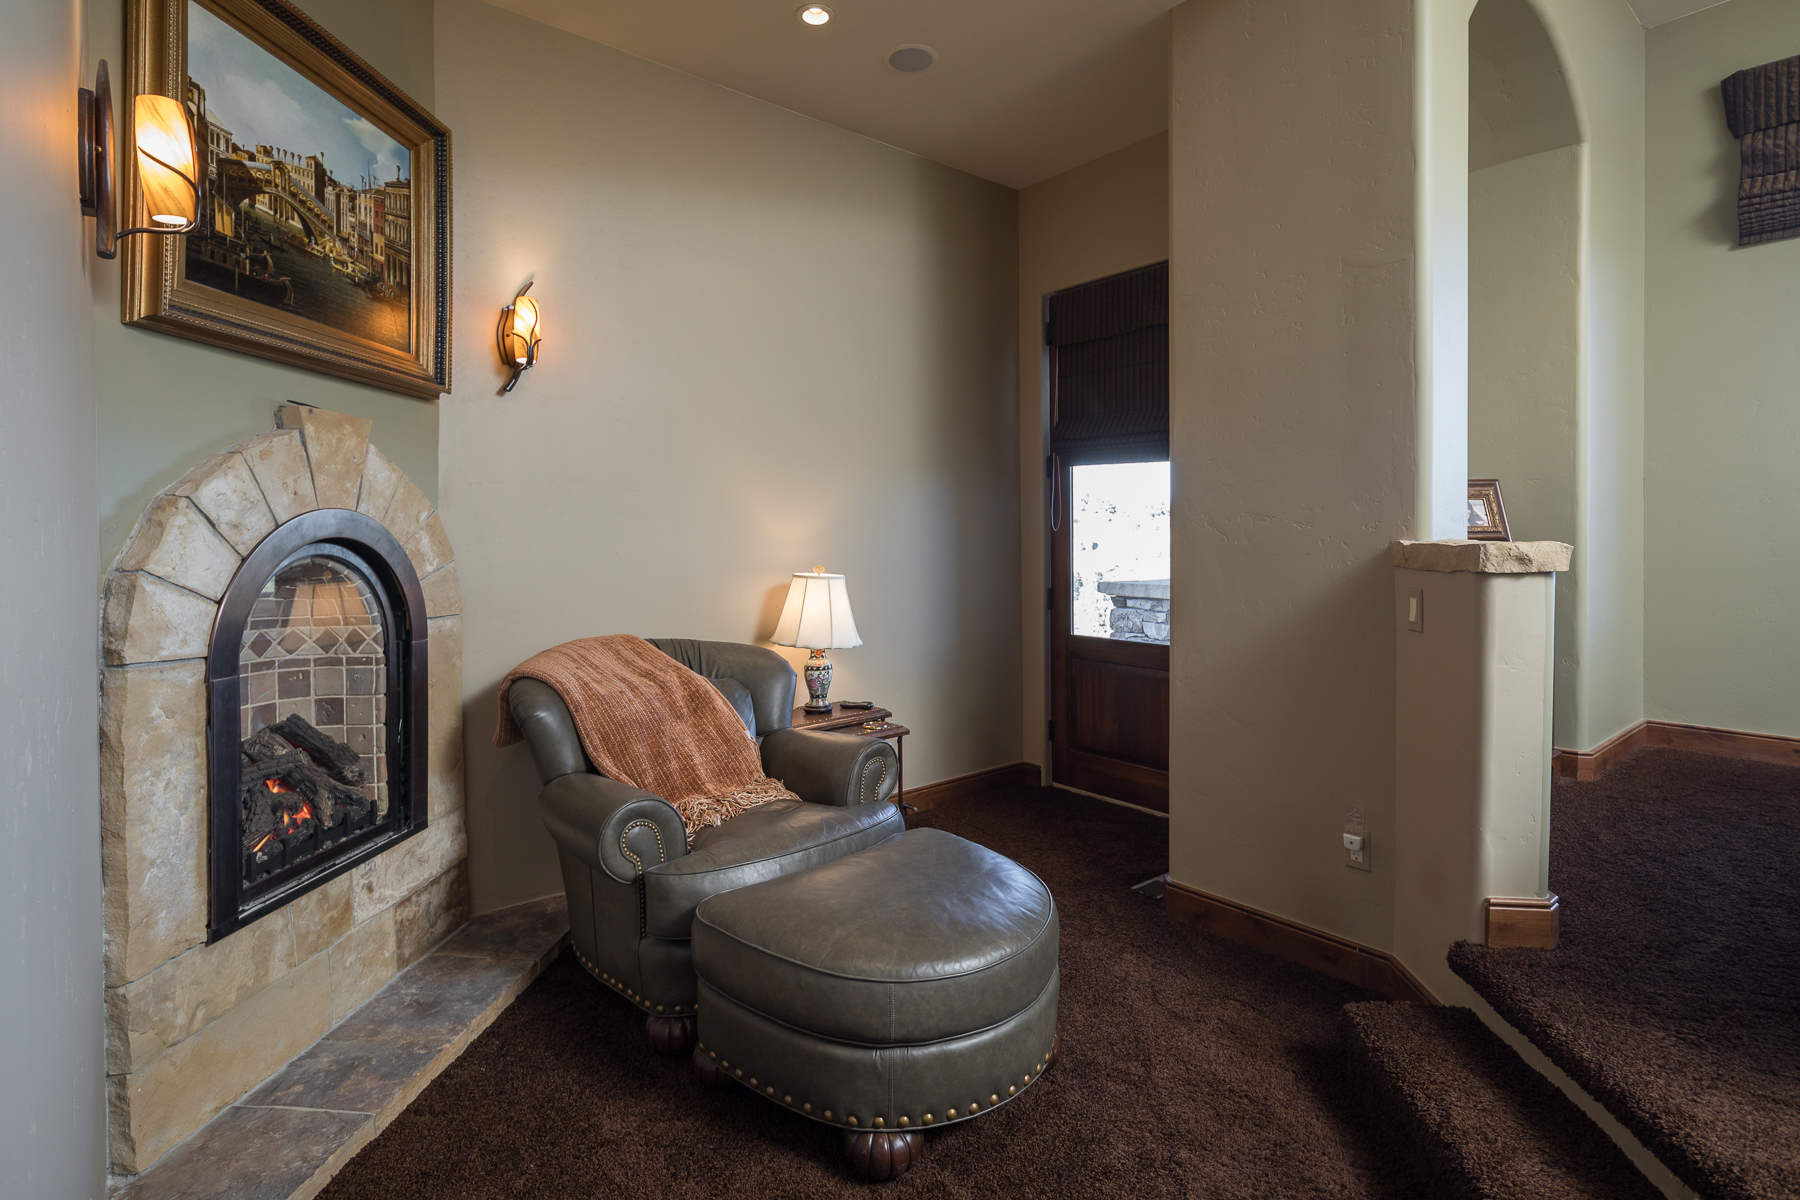 Additional photo for property listing at 208 Cima Vista Way 208 Cima Vista Way Durango, Colorado 81301 United States